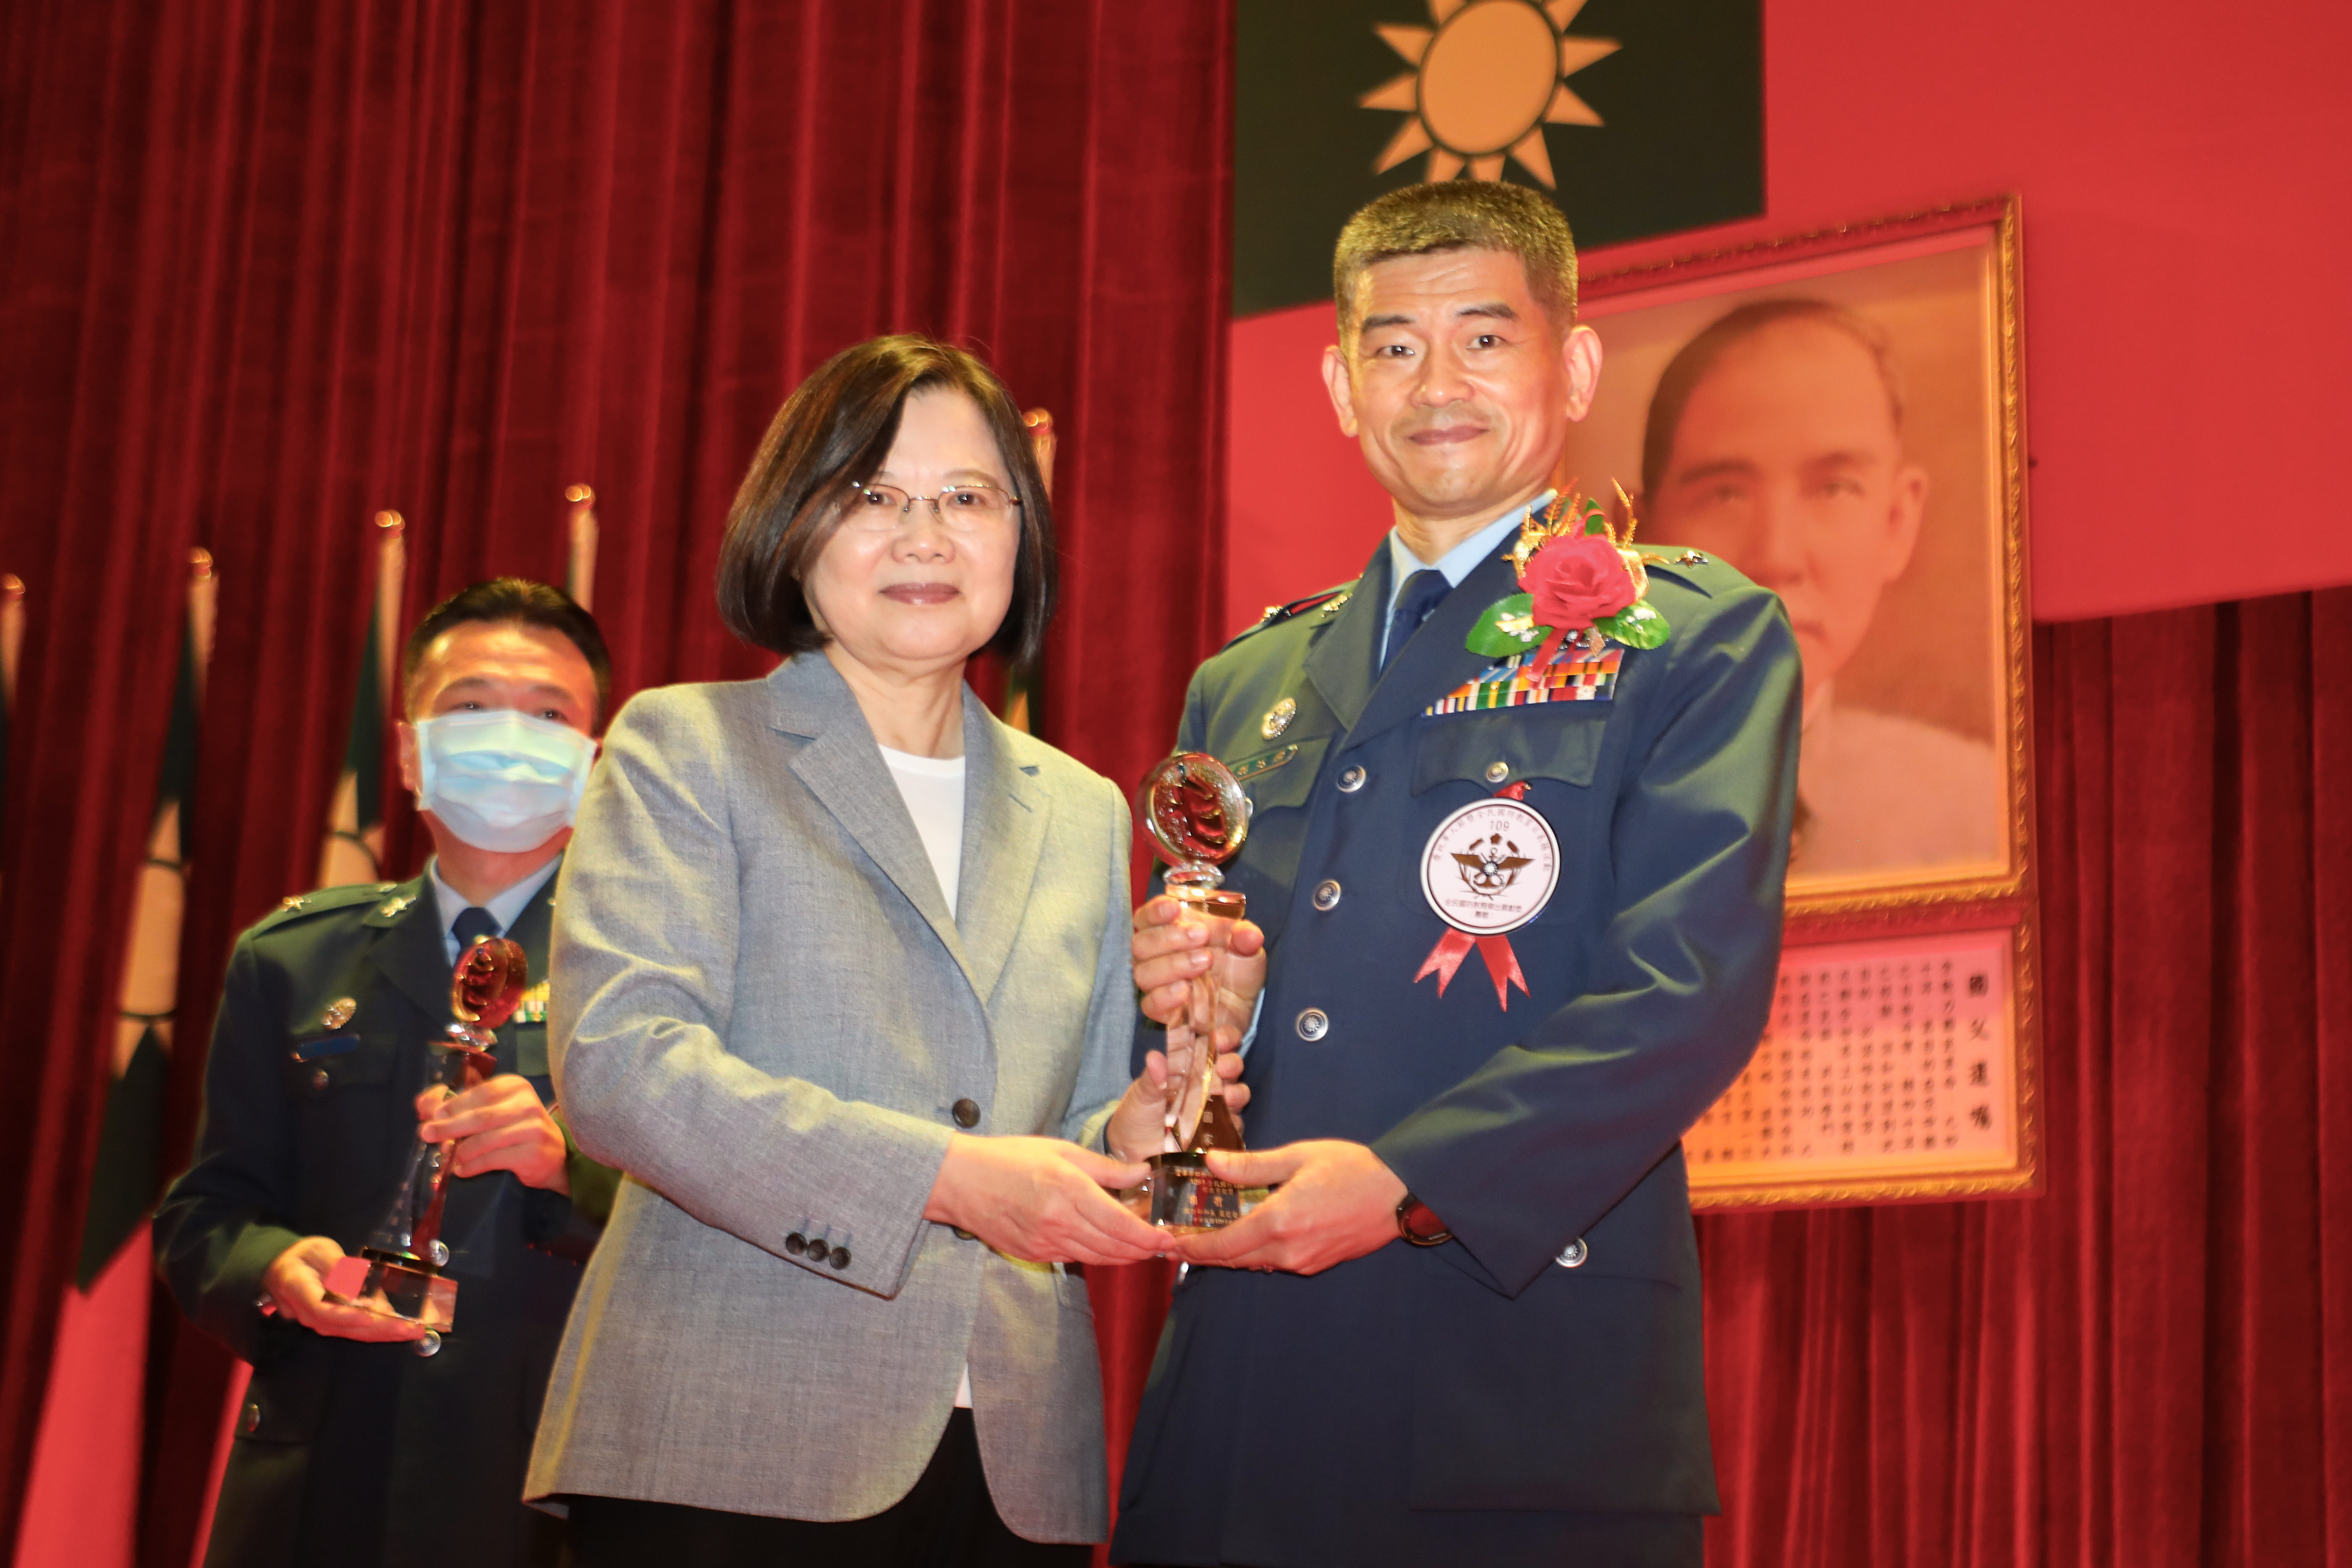 President Tsai Attends Armed Forces Day Decoration Ceremony to Recognize Dedicated Service Members